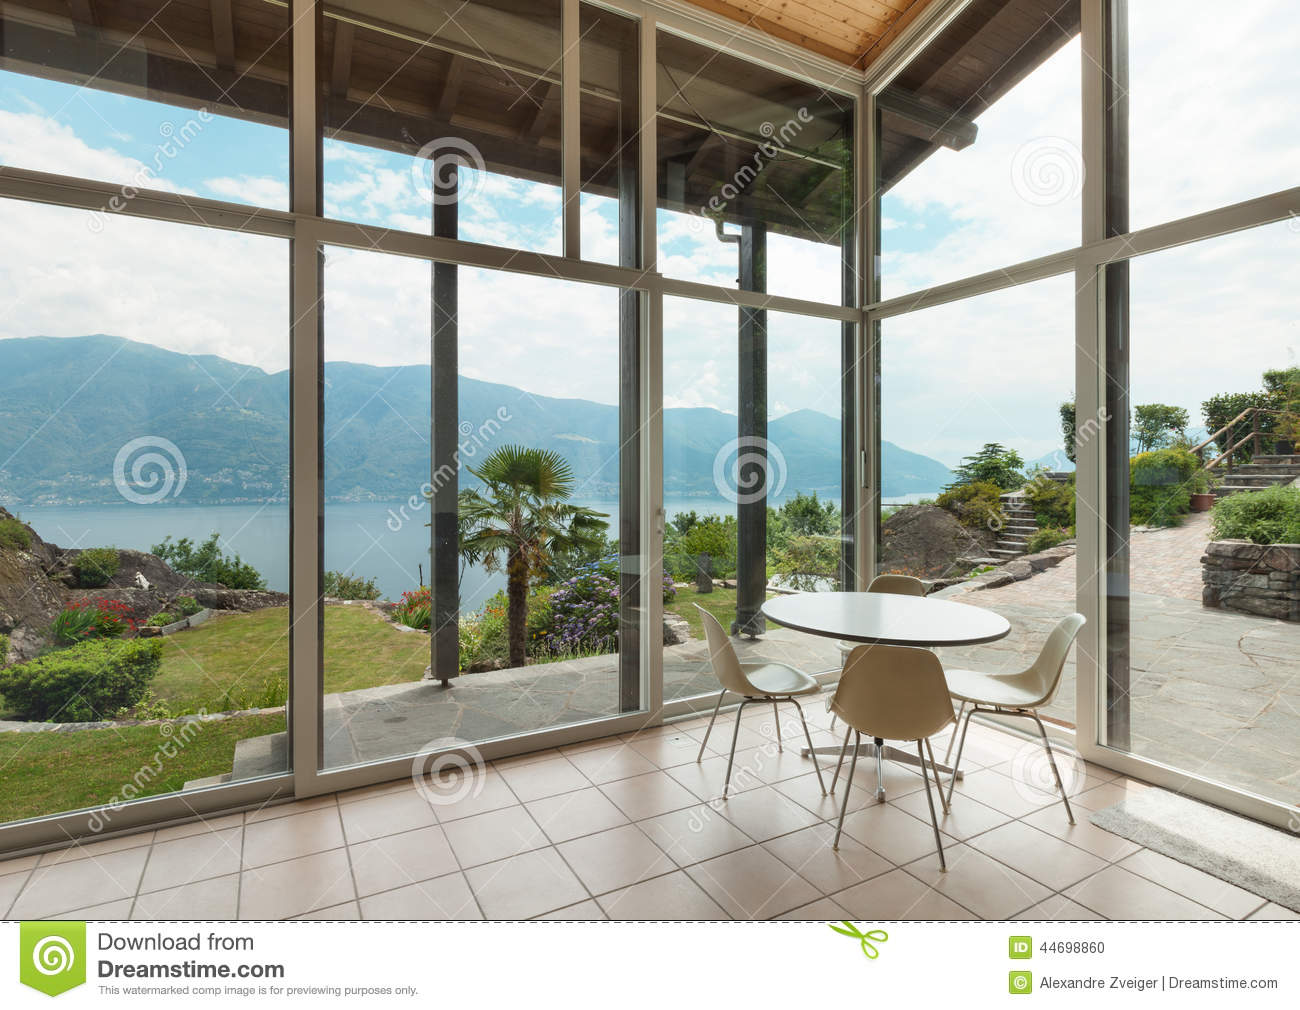 Architecture moderne int rieur v randa photo stock for Interieur veranda